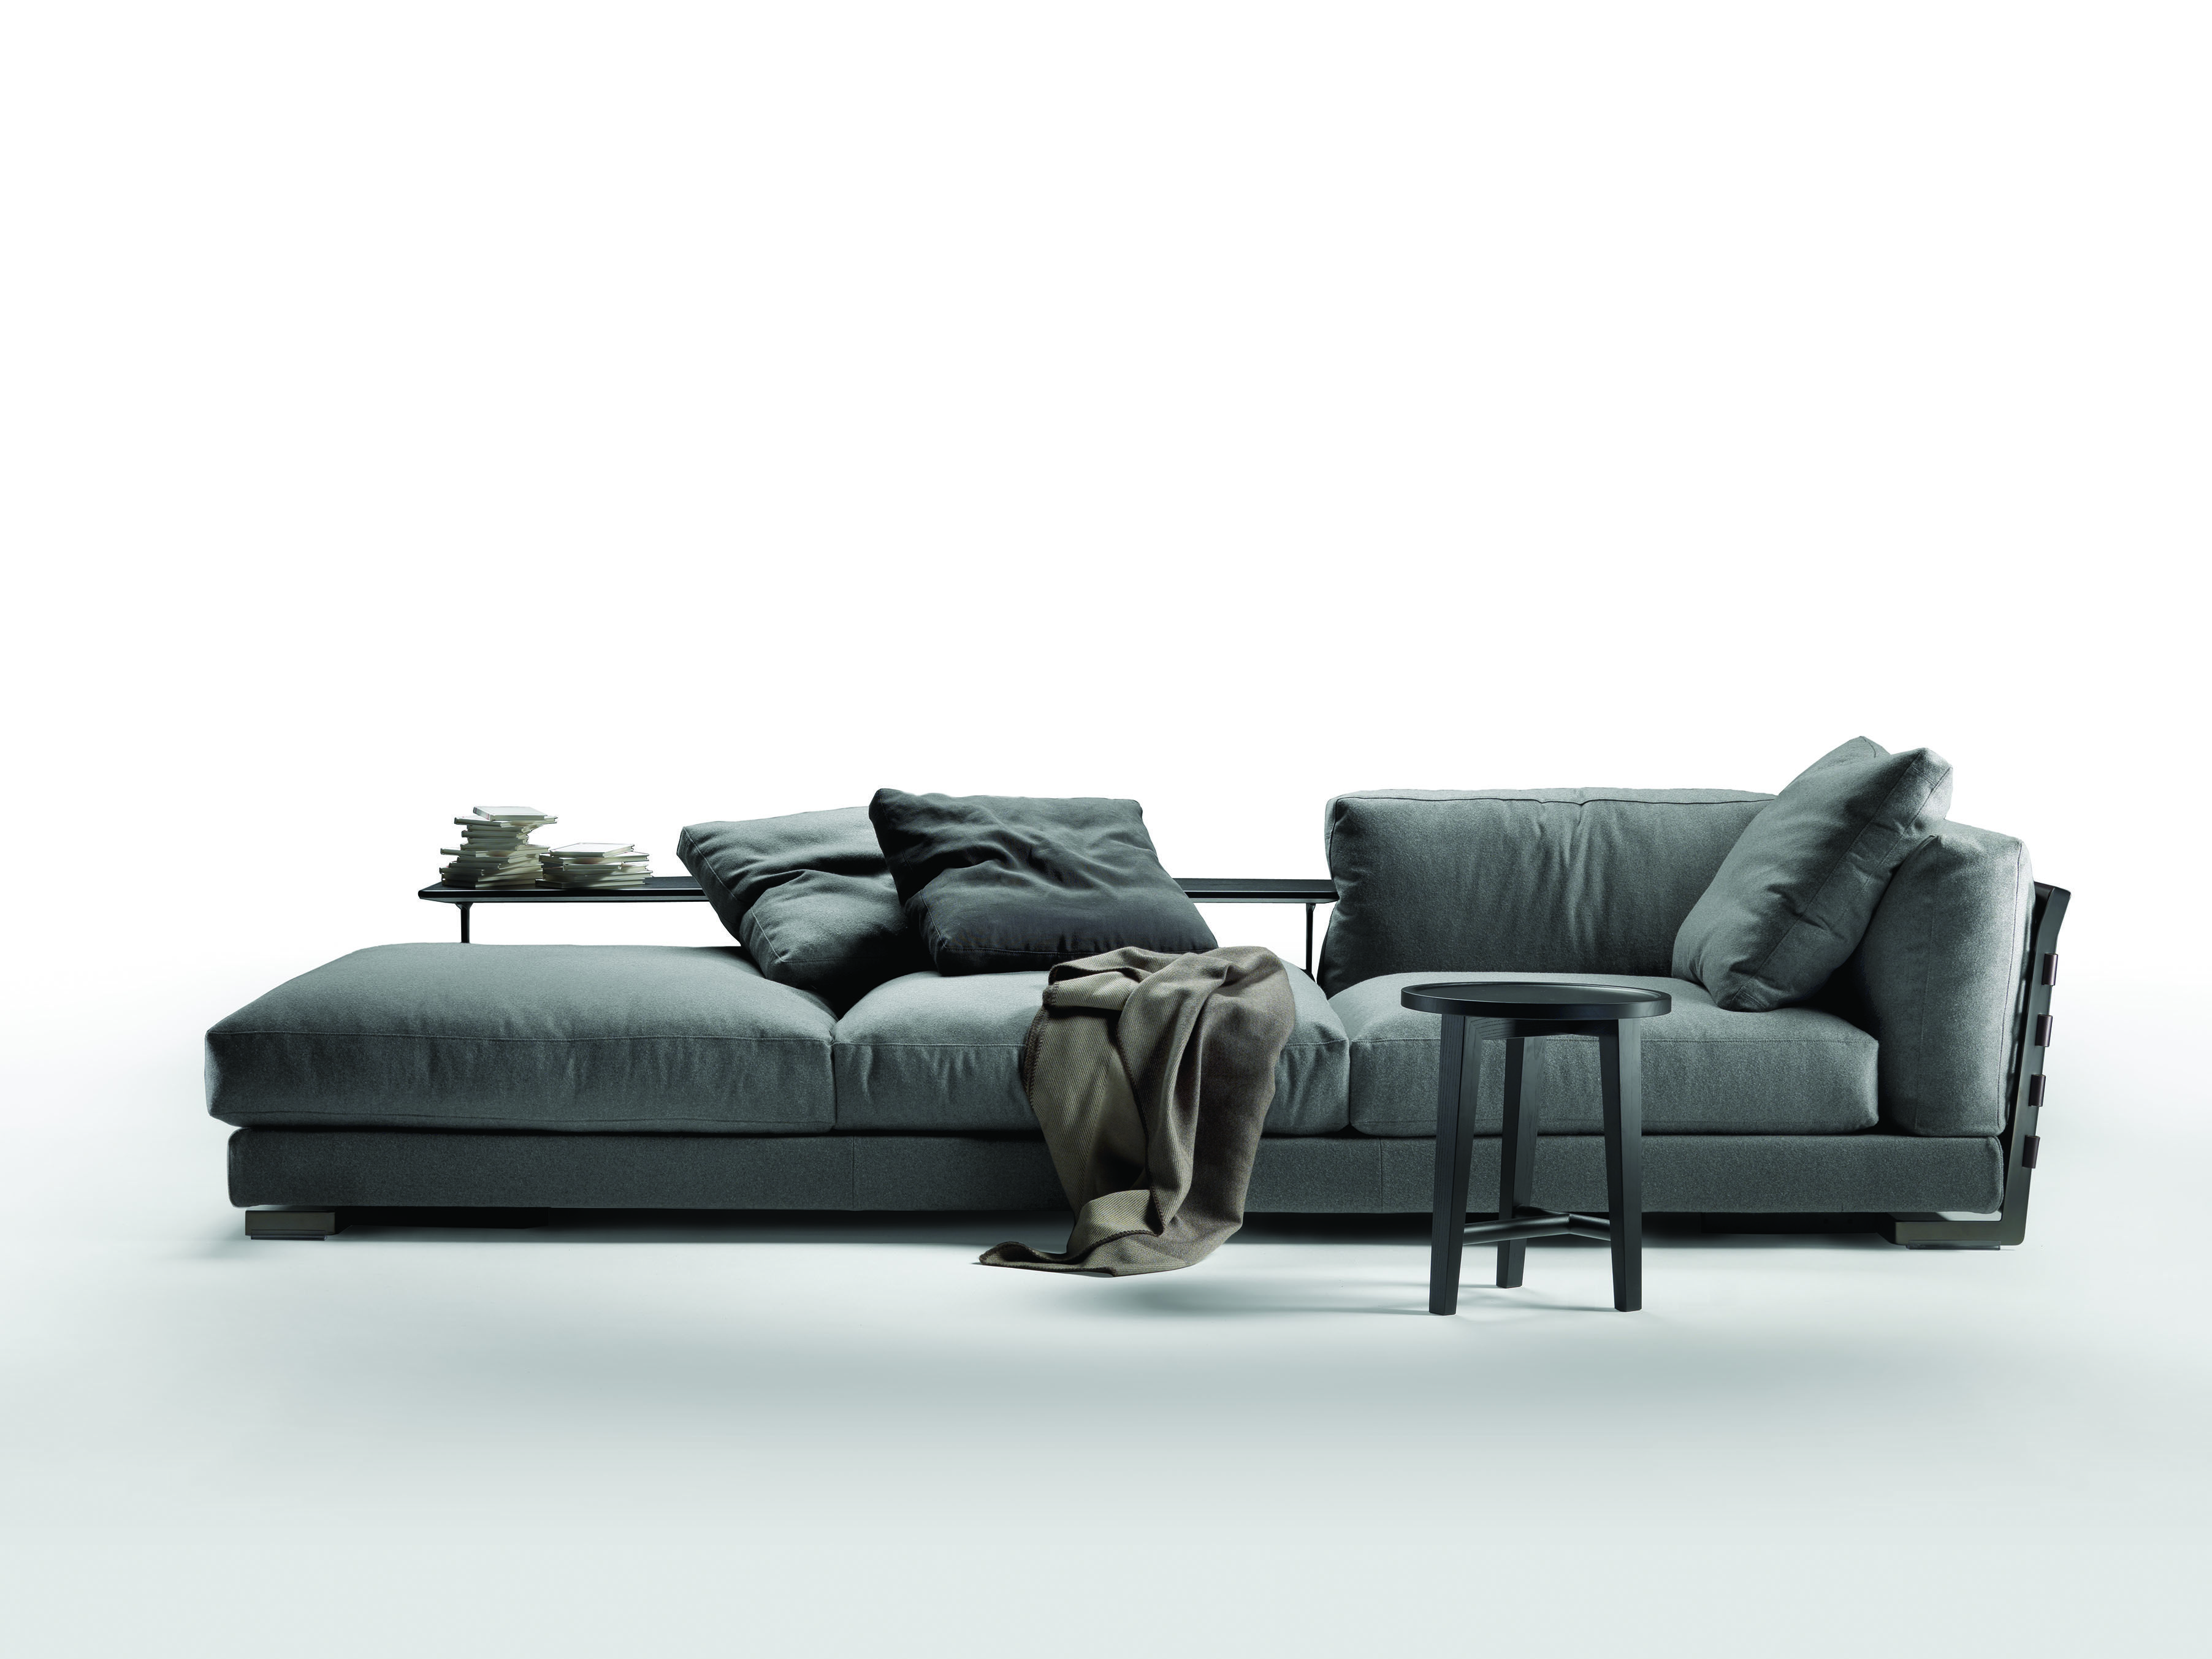 Flexform Cestone Sofa Design Antonio Citterio Sofa Design Möbeldesign Möbel Sofa